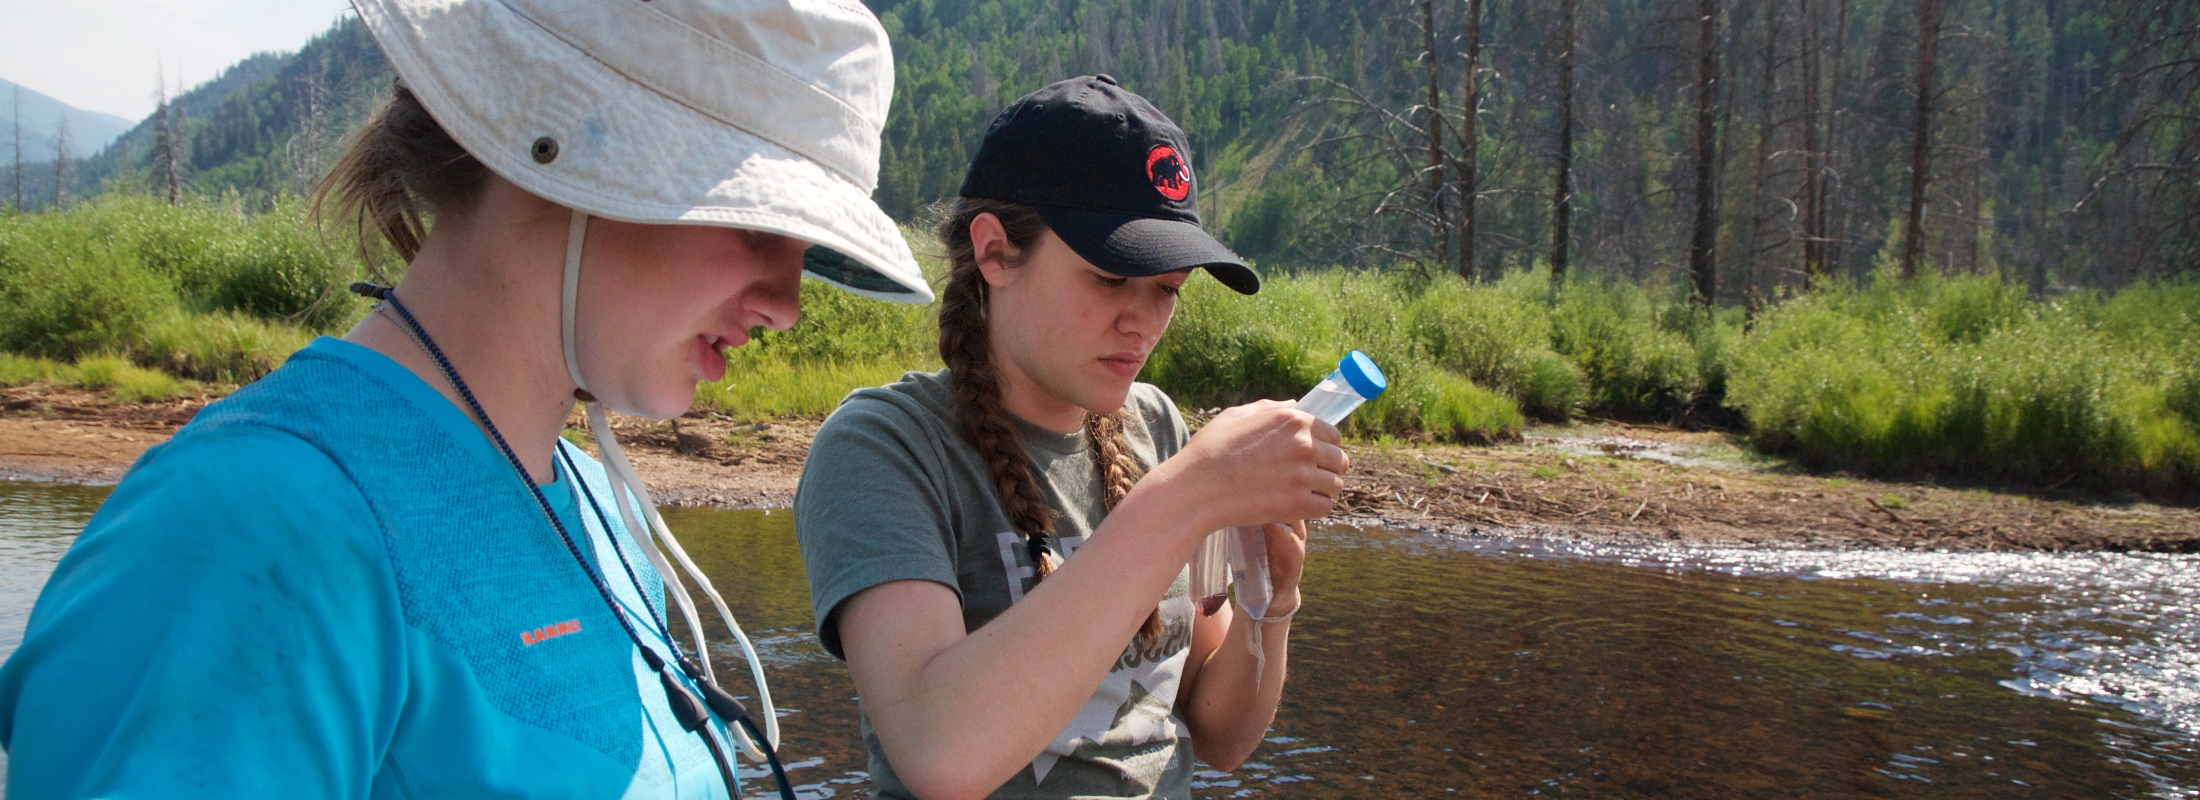 Two young female students stand in a river taking water samples.